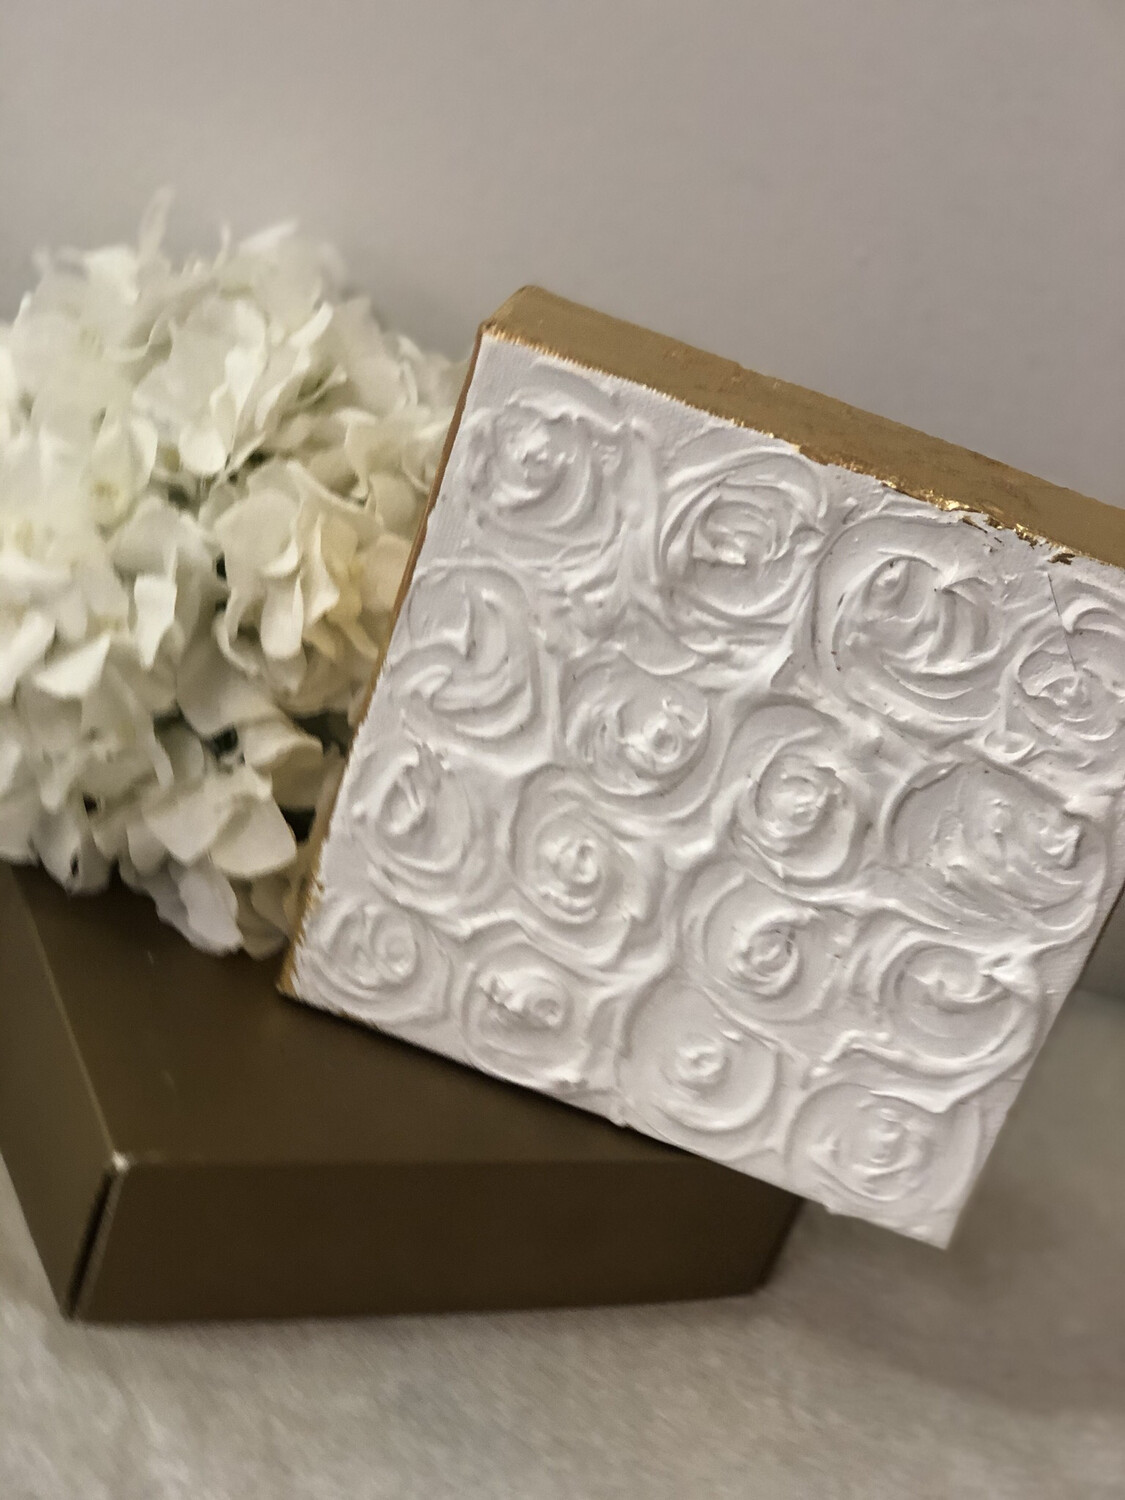 6x6 White Rose Painting Gold Trim